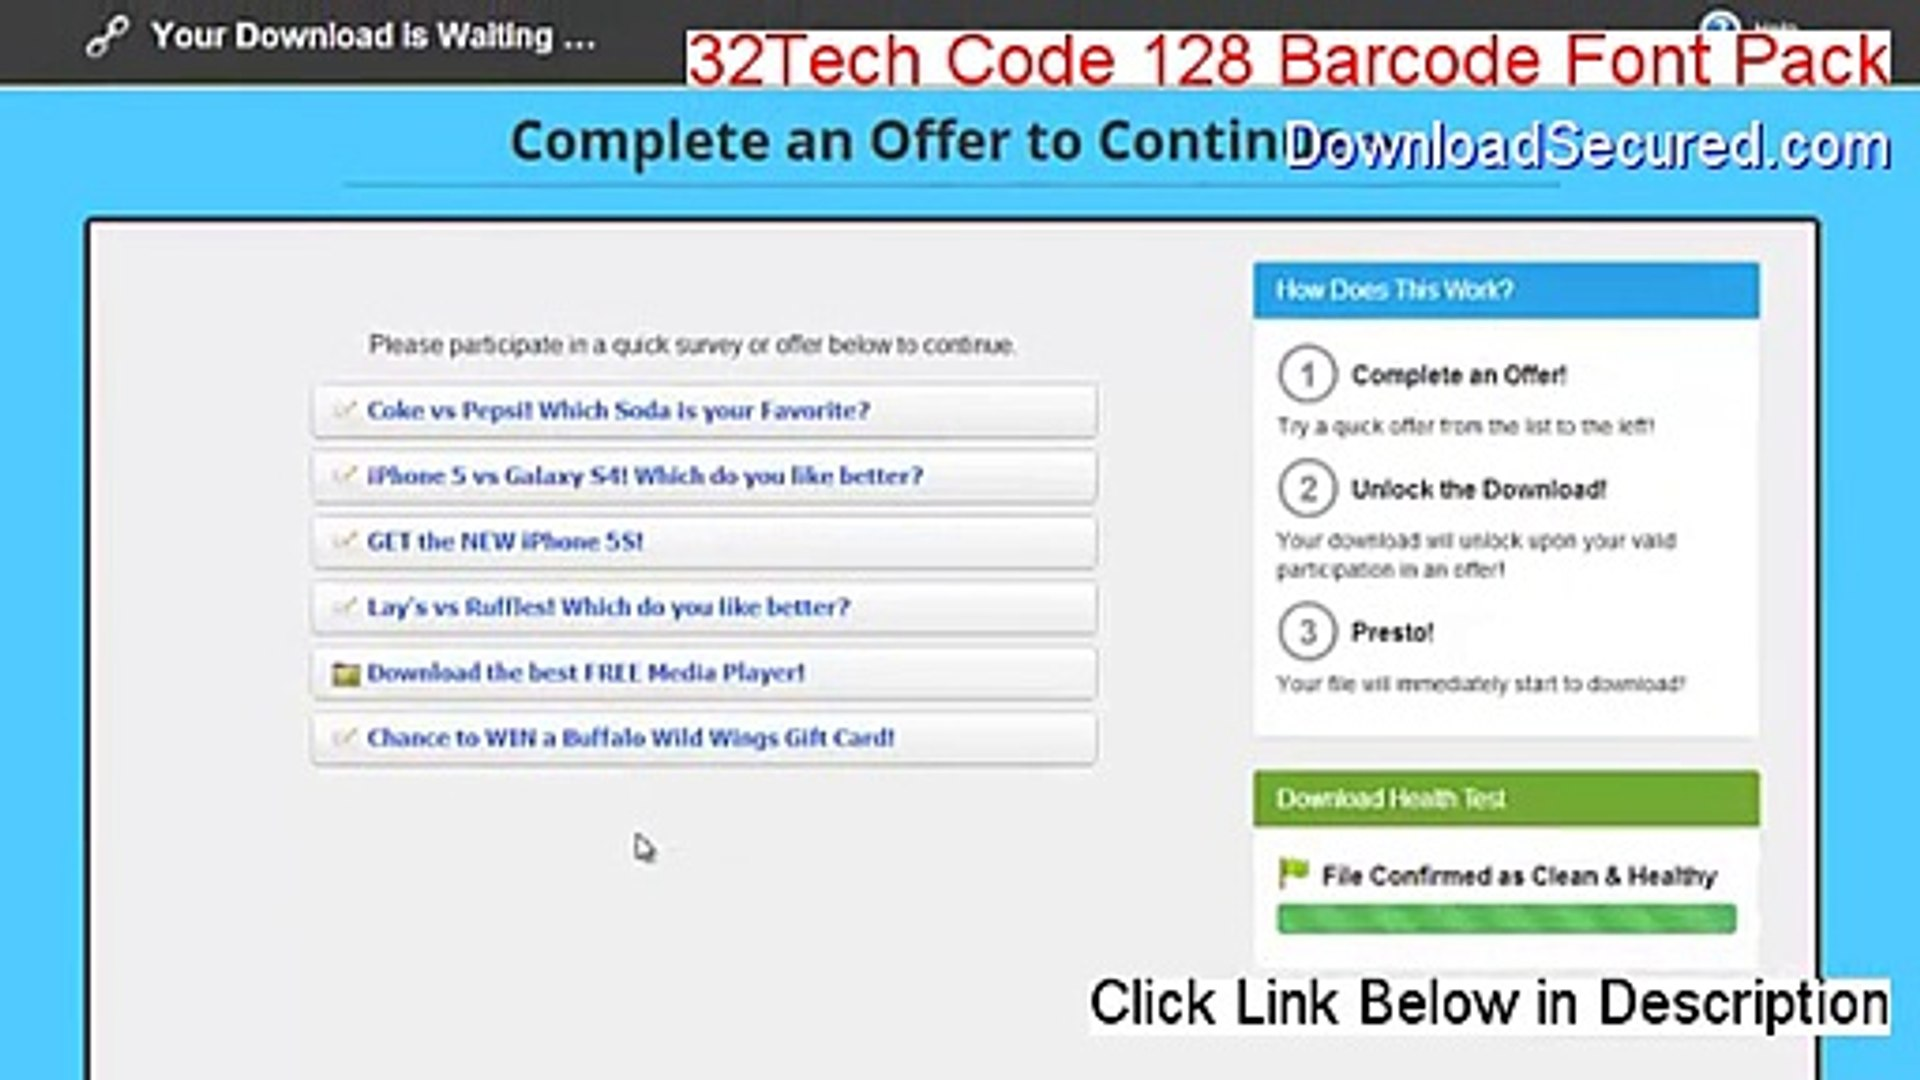 32Tech Code 128 Barcode Font Pack Serial (Risk Free Download)